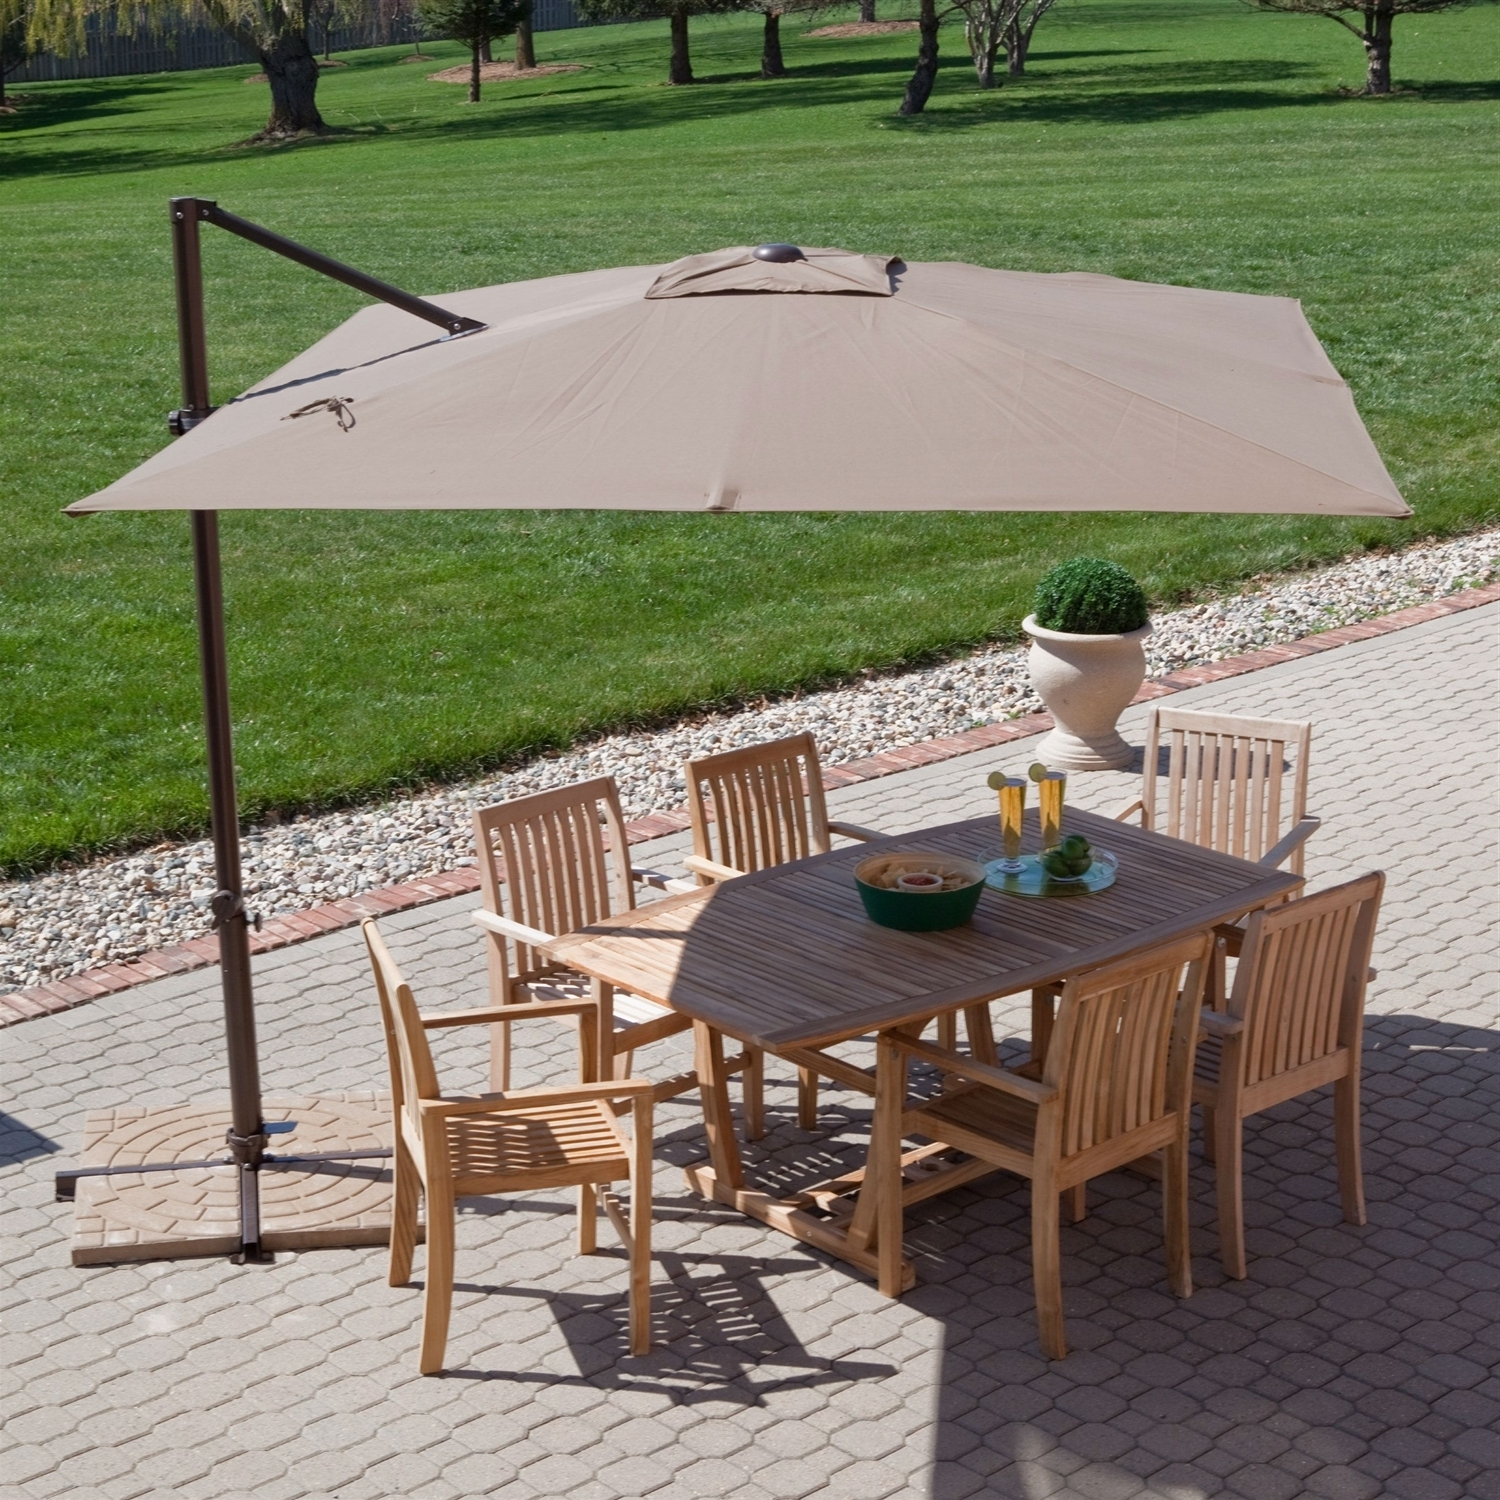 Outdoor Patio Umbrellas Pertaining To 2019 A Guide To Buying Offset Patio Umbrella – Blogbeen (View 11 of 20)